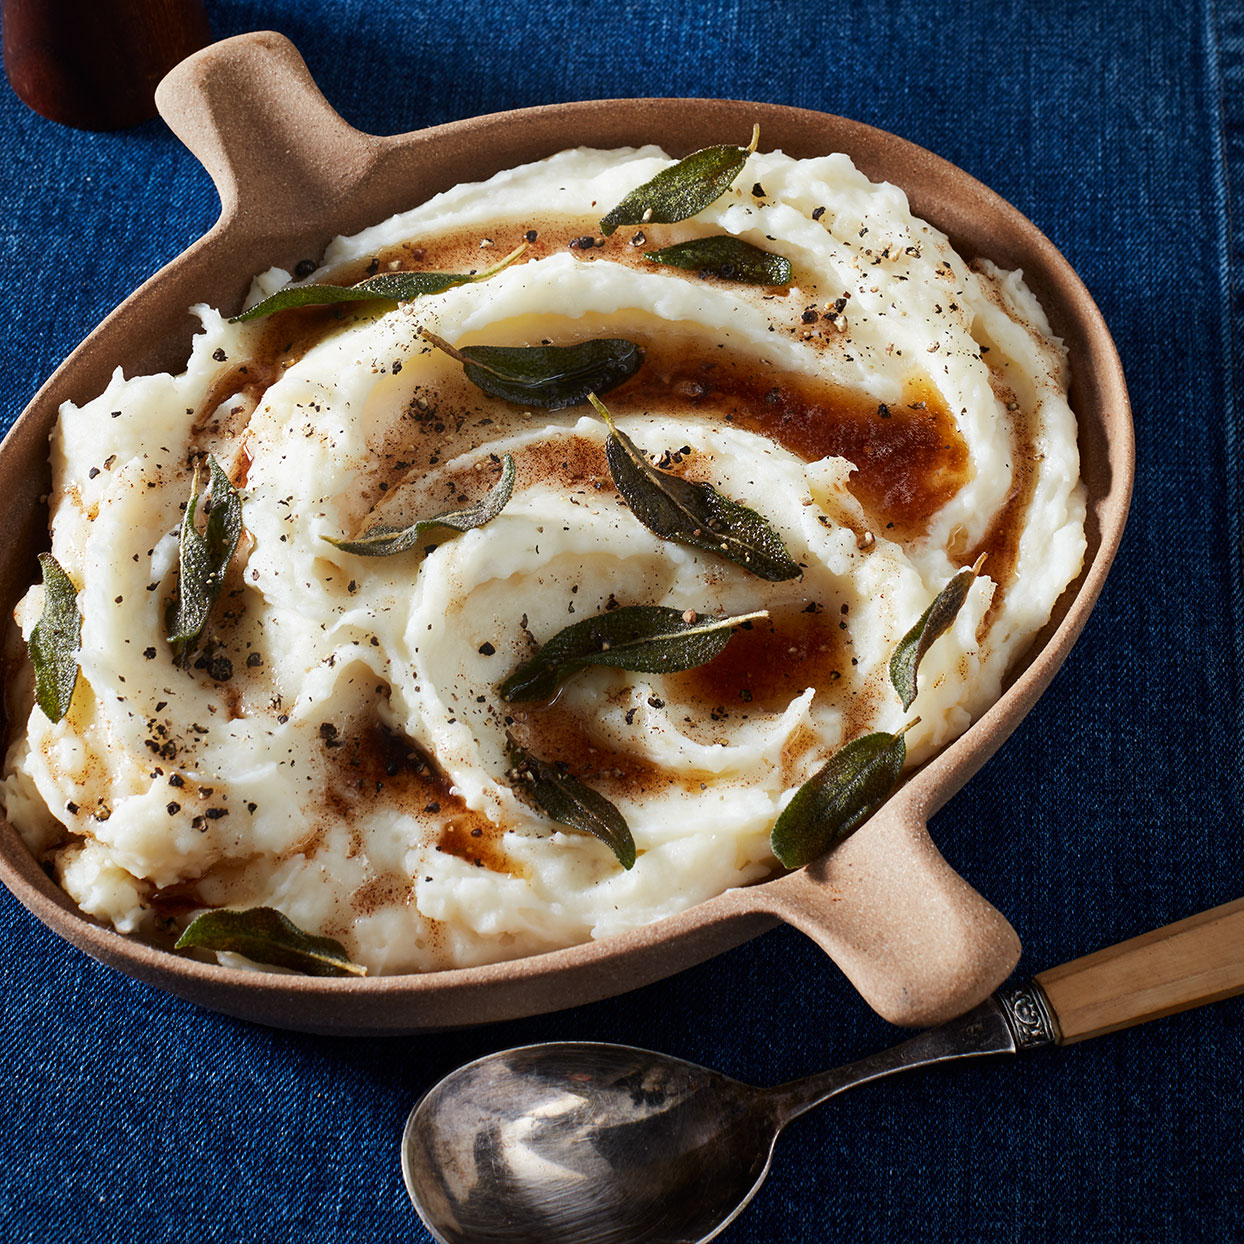 Russets are the creamiest, best potatoes for mashed potatoes. A drizzle of browned butter on top adds a nutty flavor that mingles nicely with tangy yogurt and fragrant sage.